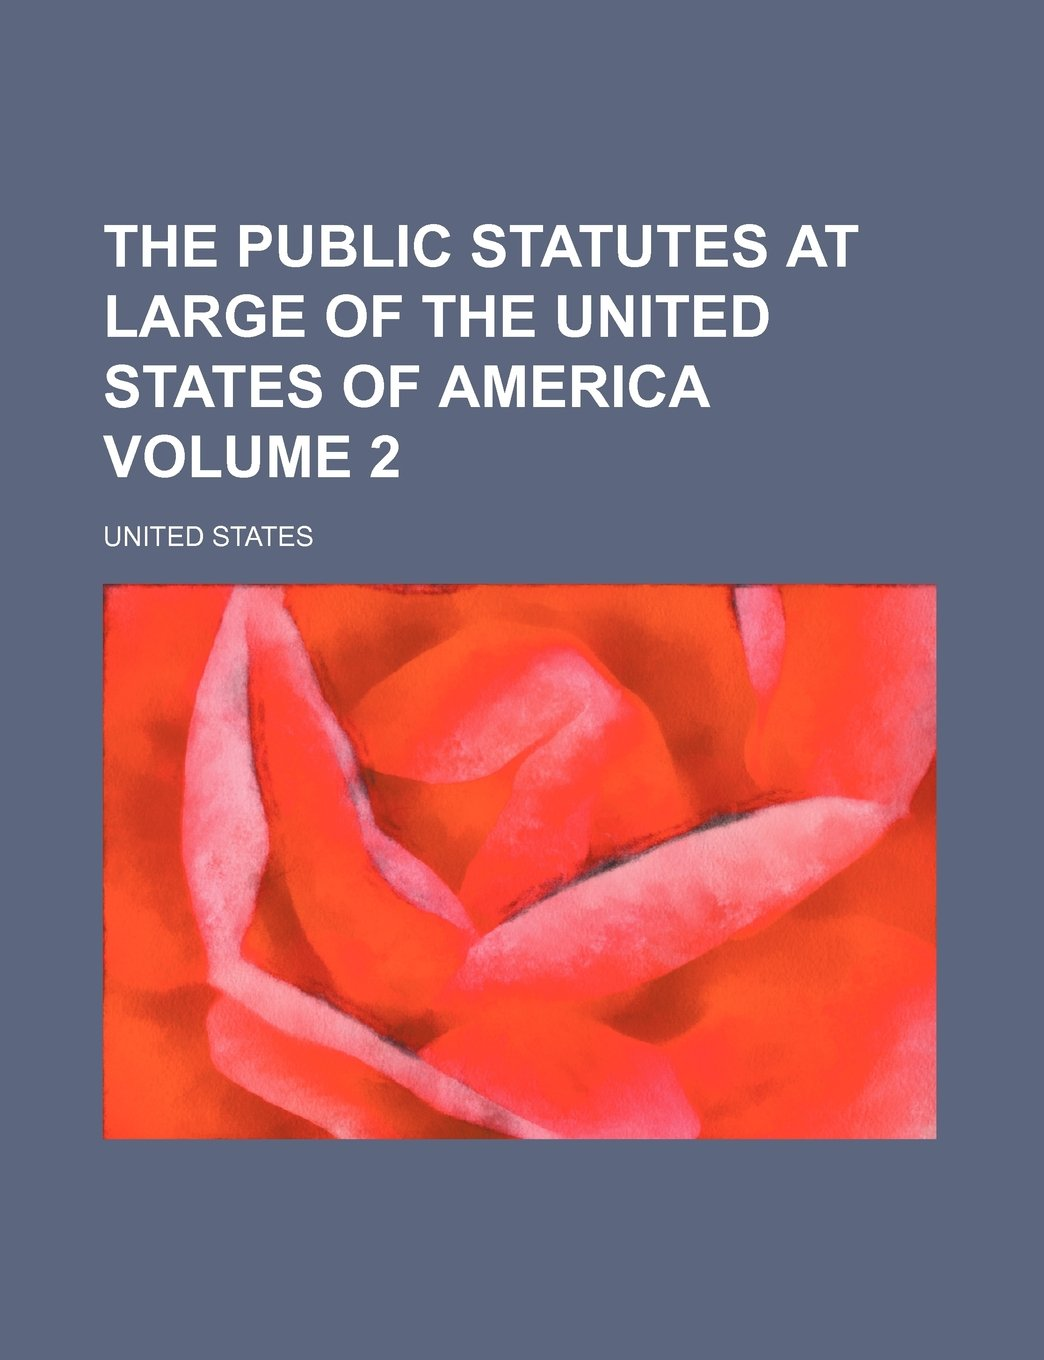 The Public Statutes at Large of the United States of America Volume 2 PDF